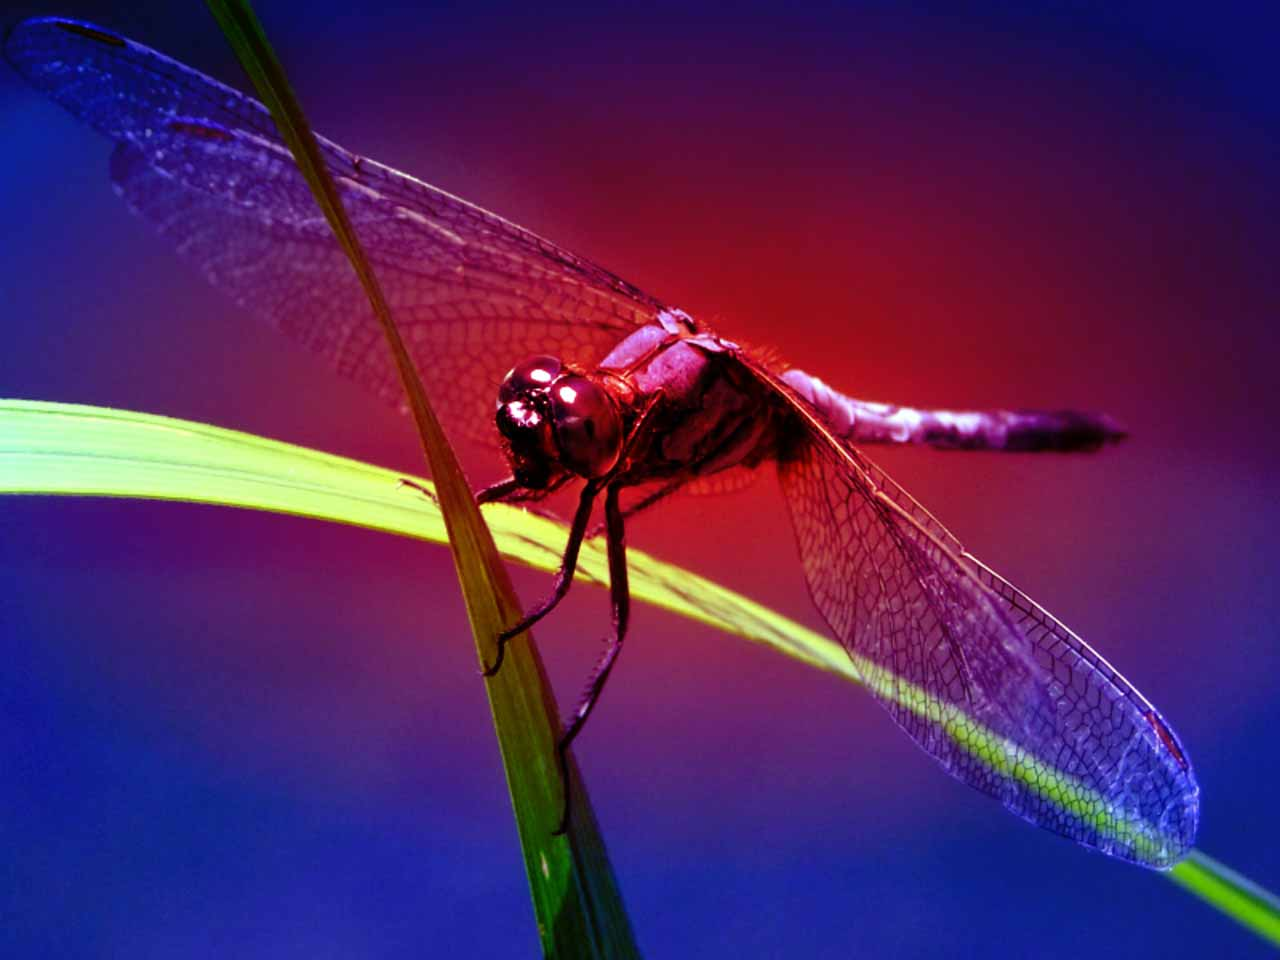 HD Wallpapers Dragonfly Wallpapers 1280x960